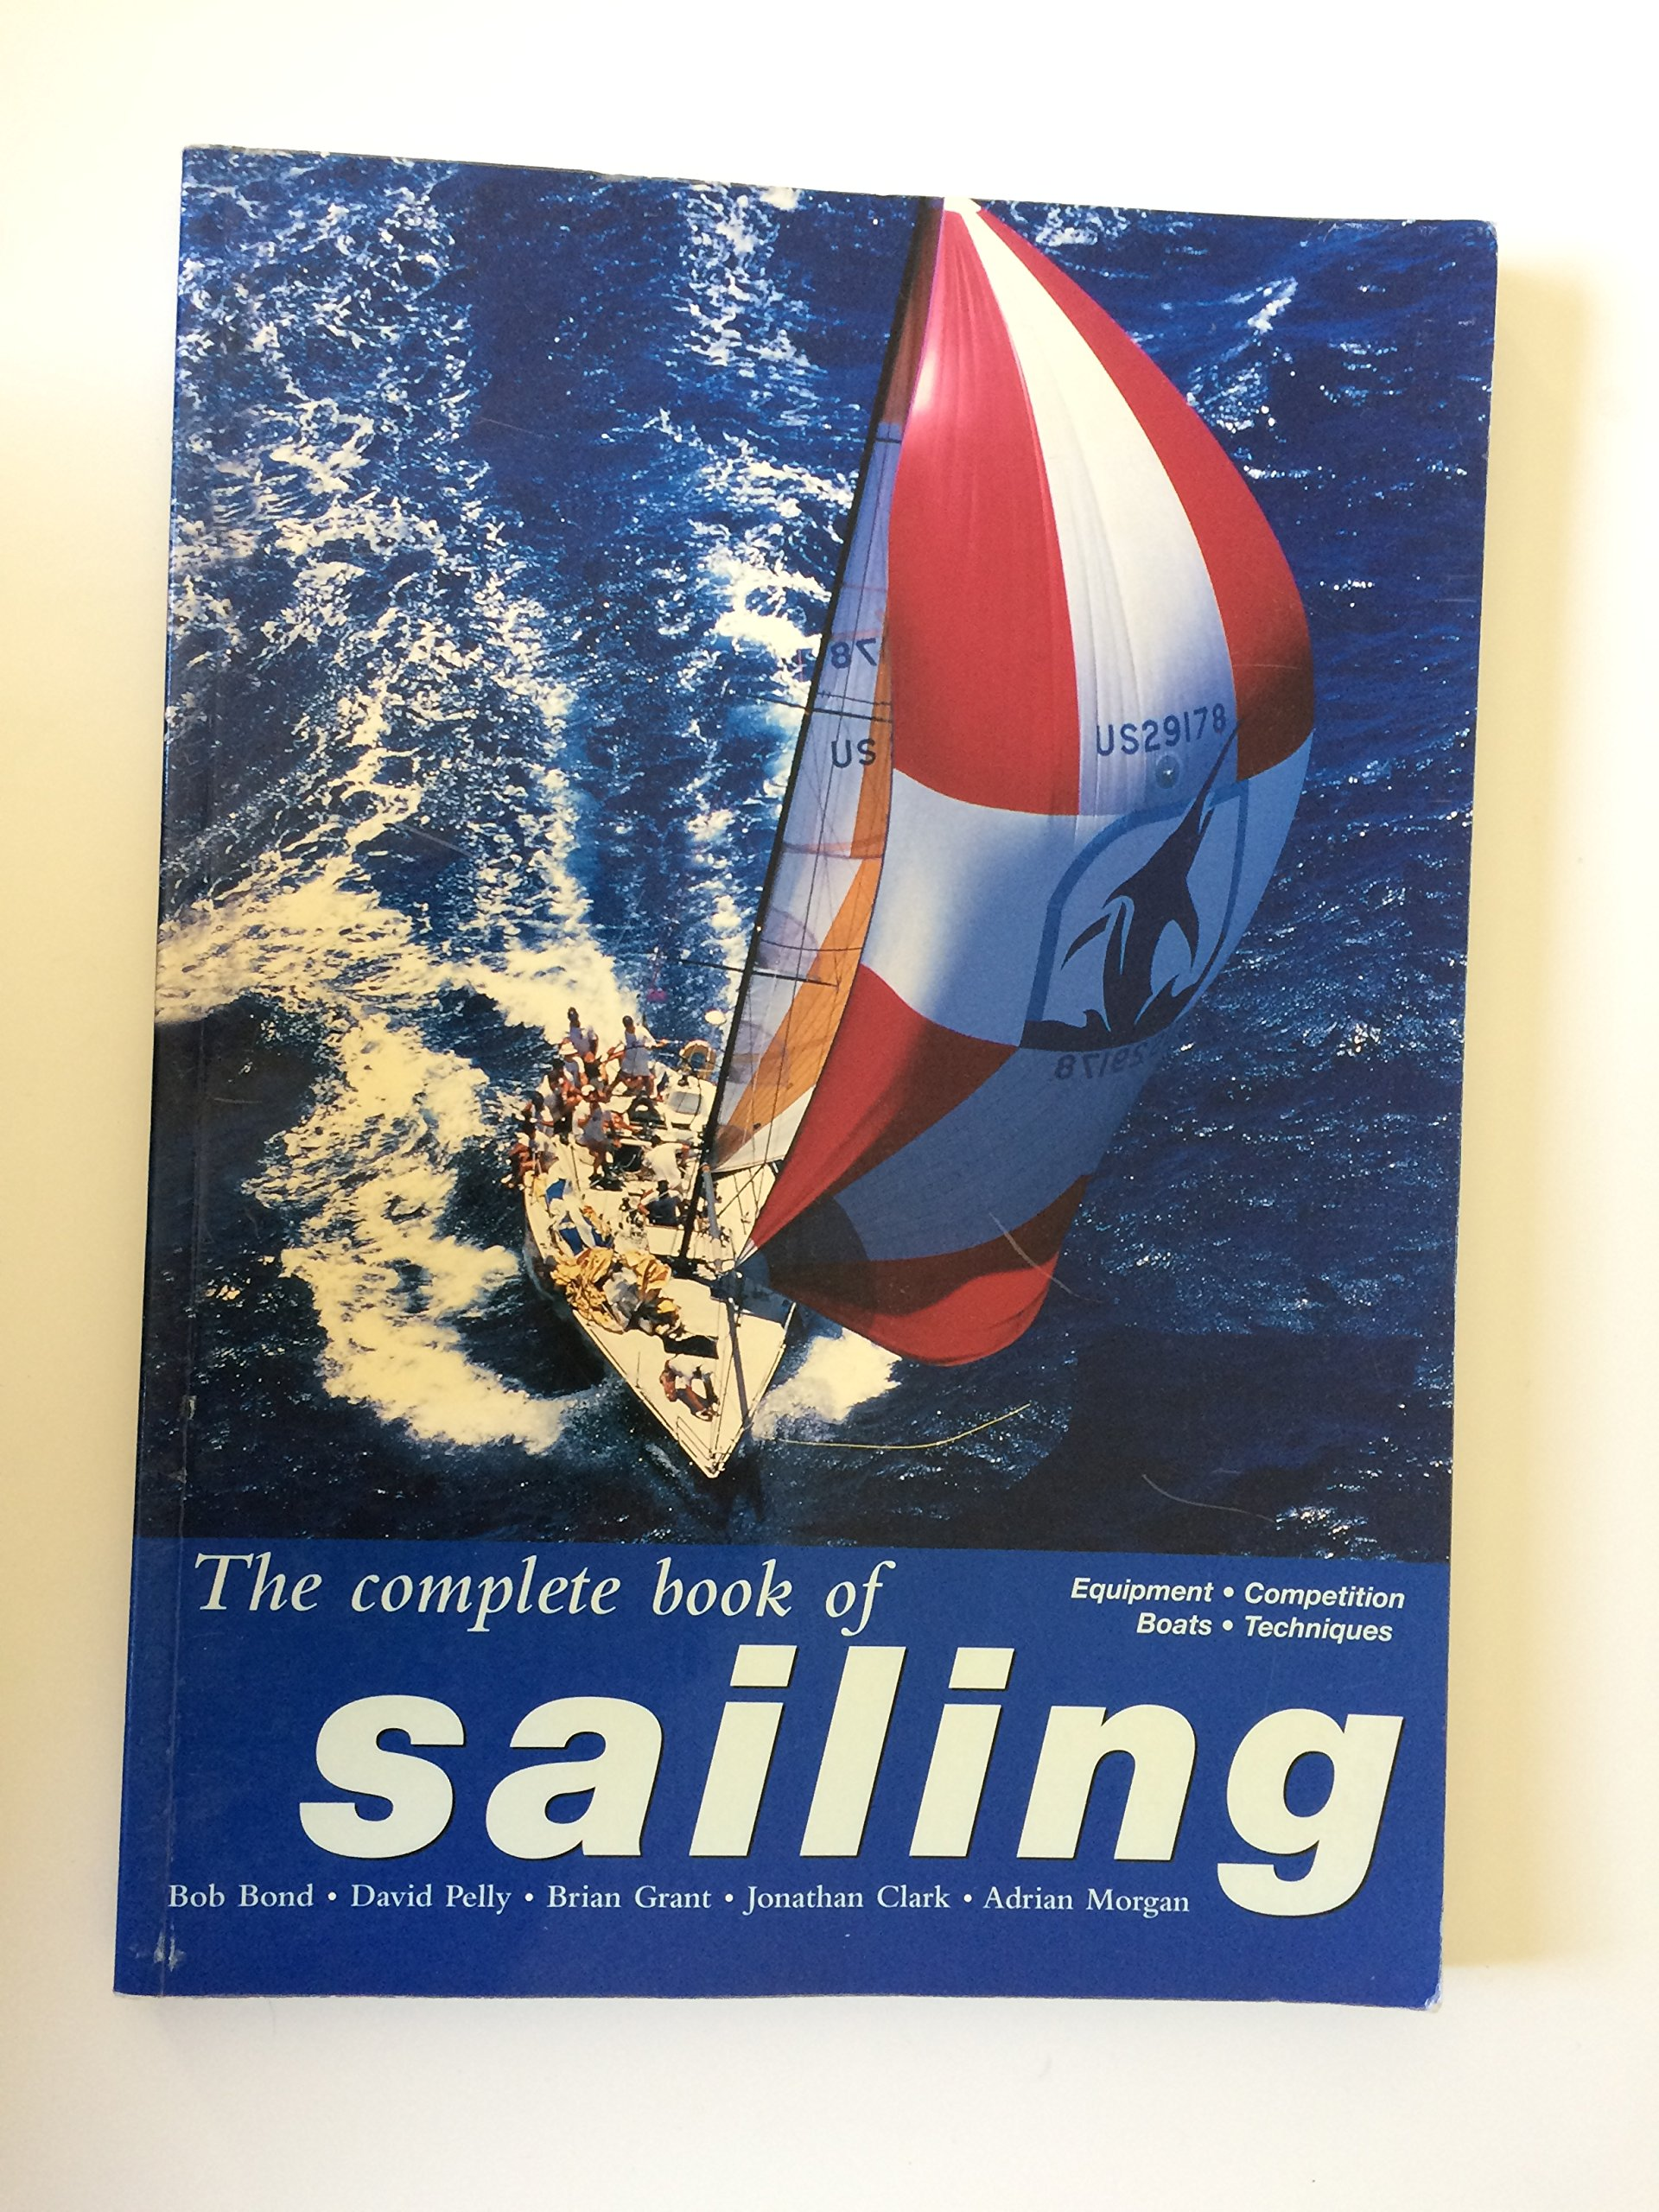 The Complete Book of Sailing: Equipment, Boats, Competition